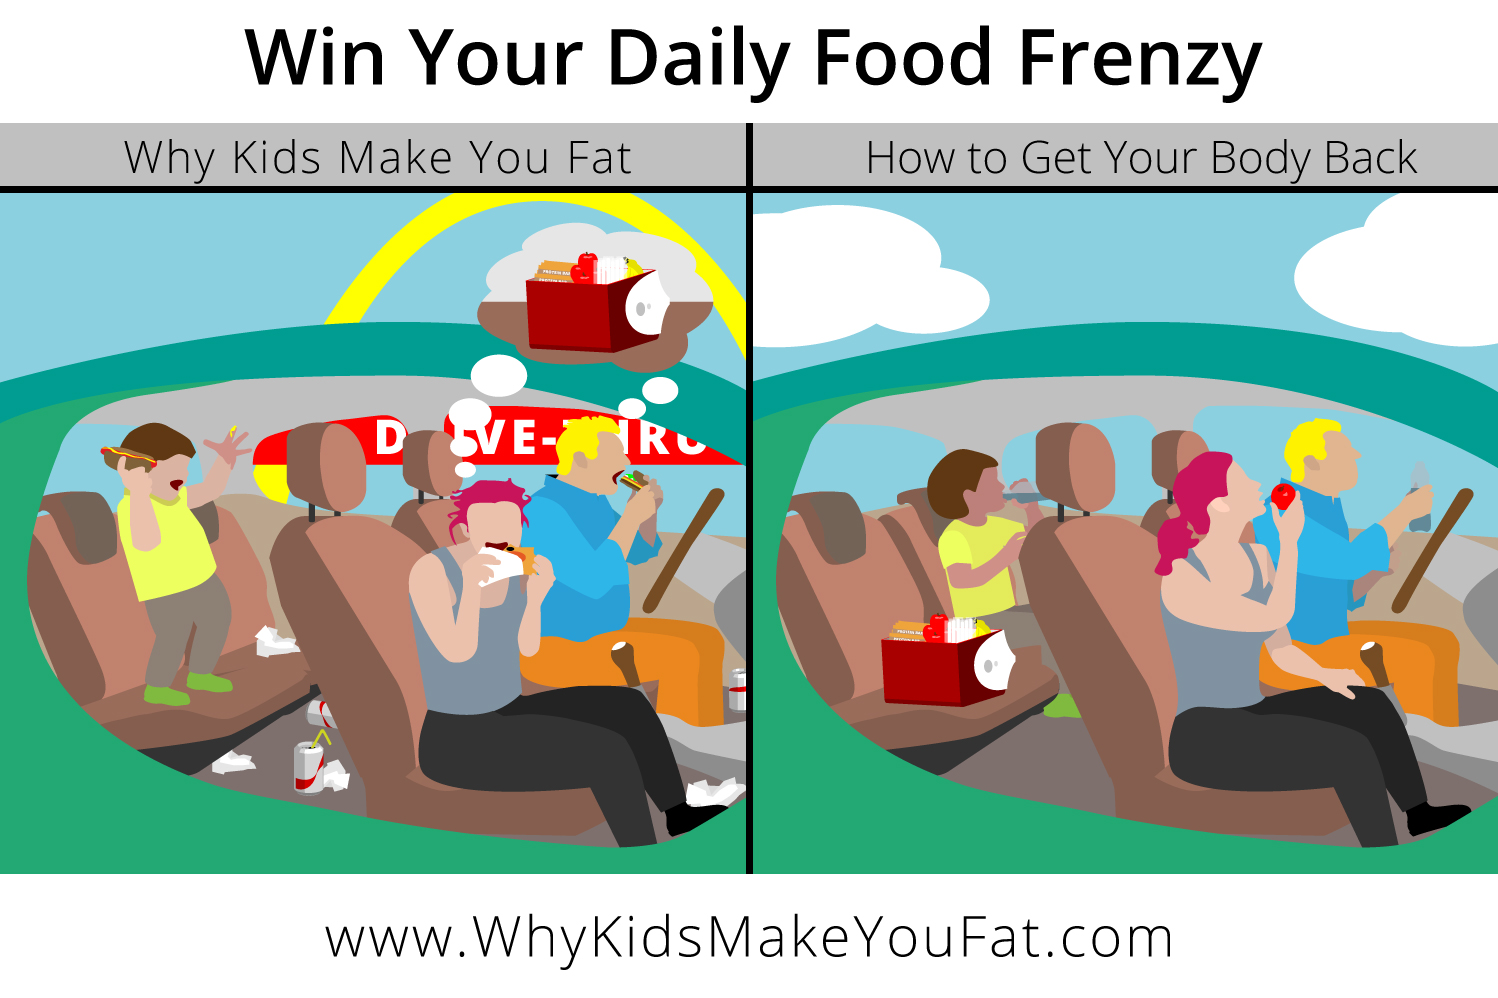 WKMYF-Infographic-Win-Your-Daily-Food-Frenzy